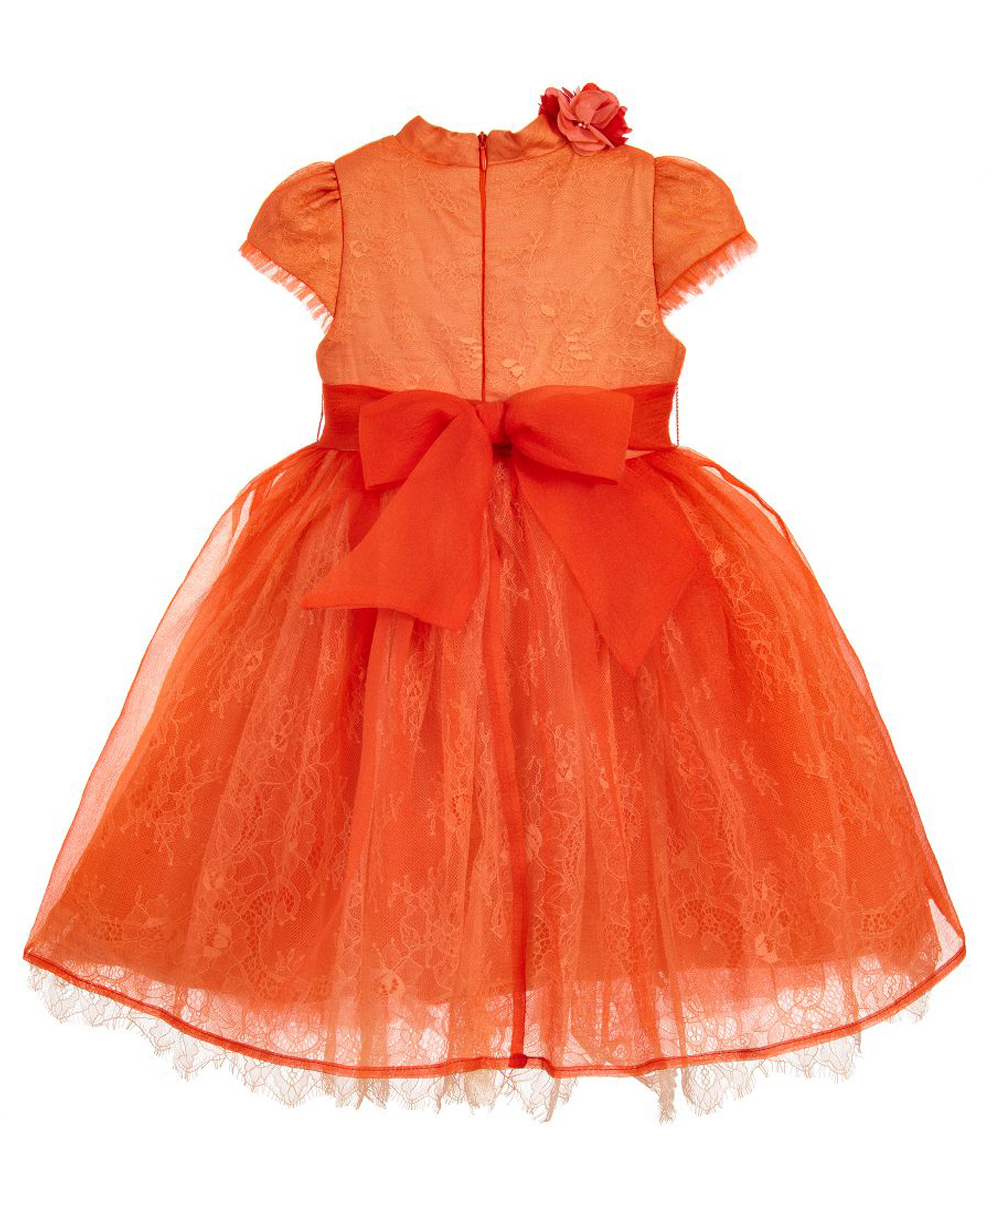 Orange Blossom Dress Lace Wedding Dress Evening Wear  Flowergirl